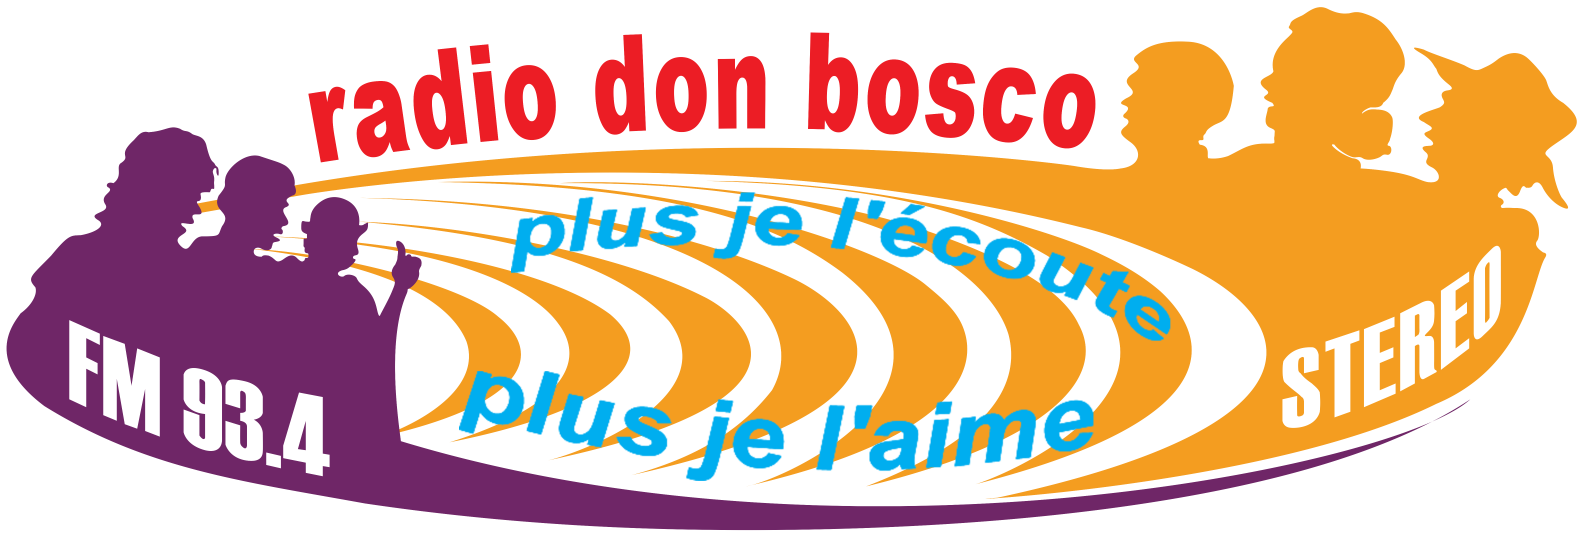 Radio Don Bosco Madagascar